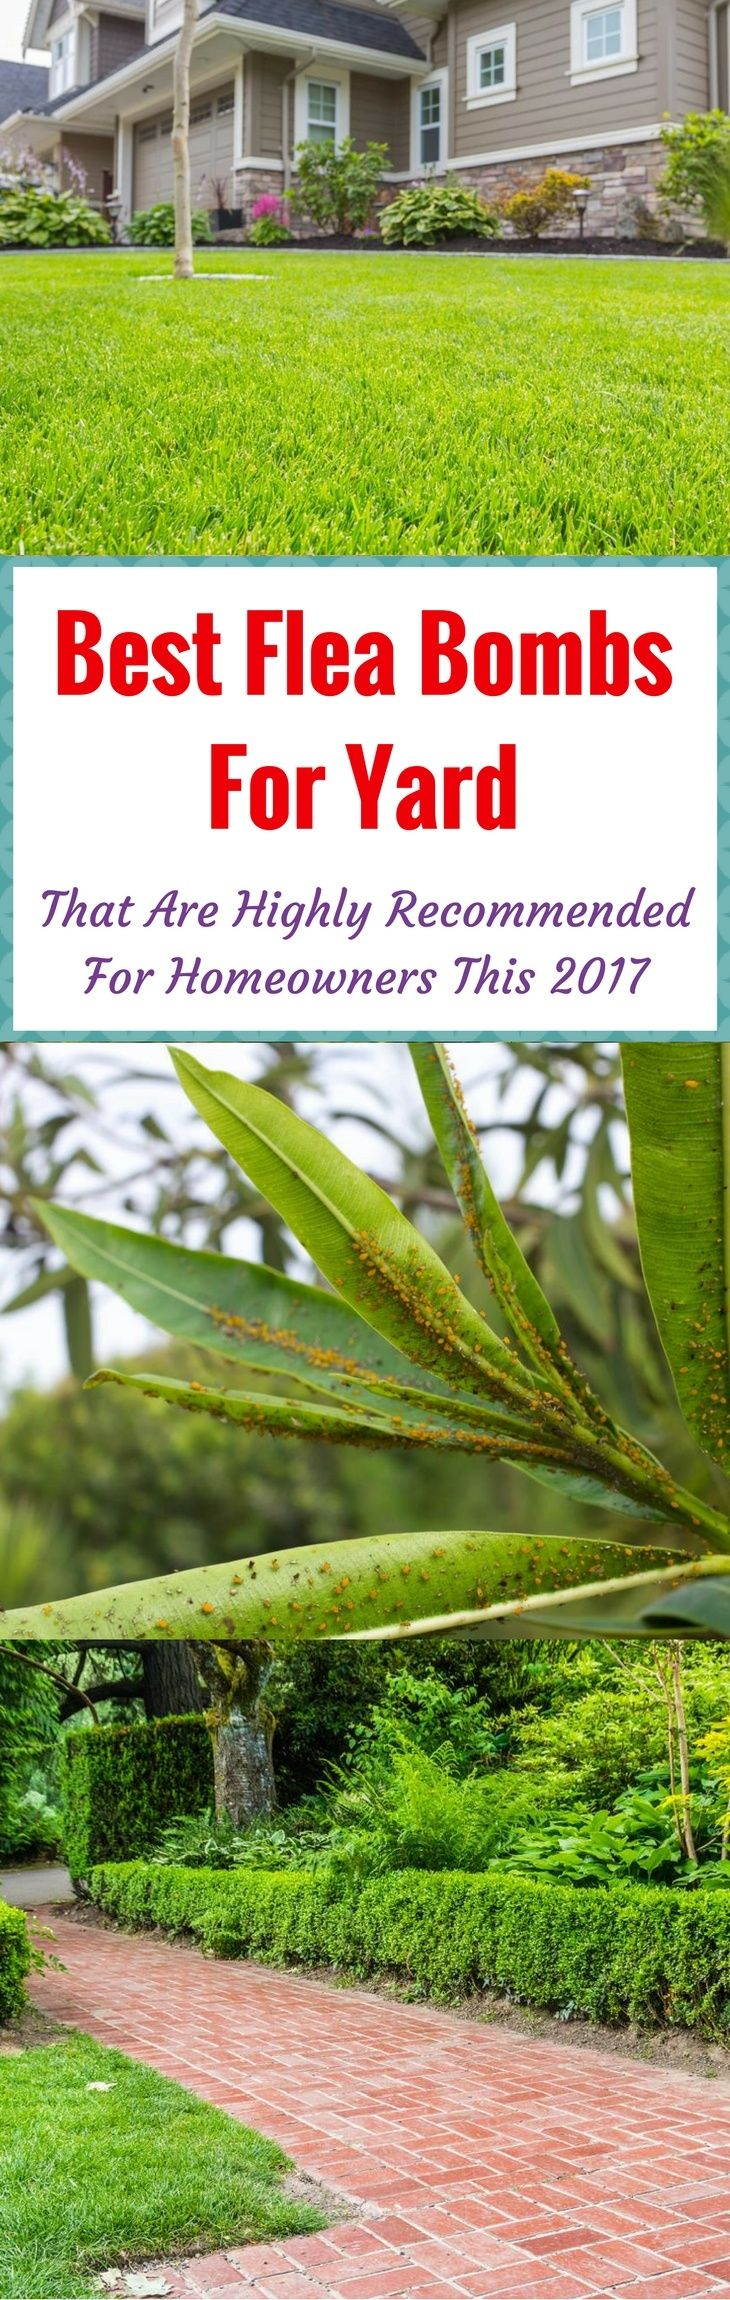 Best 25 flea bomb ideas on pinterest getting rid of fleas in your yard is not easy learn how to get rid of fleas efficiently and the best flea bomb for yard we recommend in this article ccuart Images